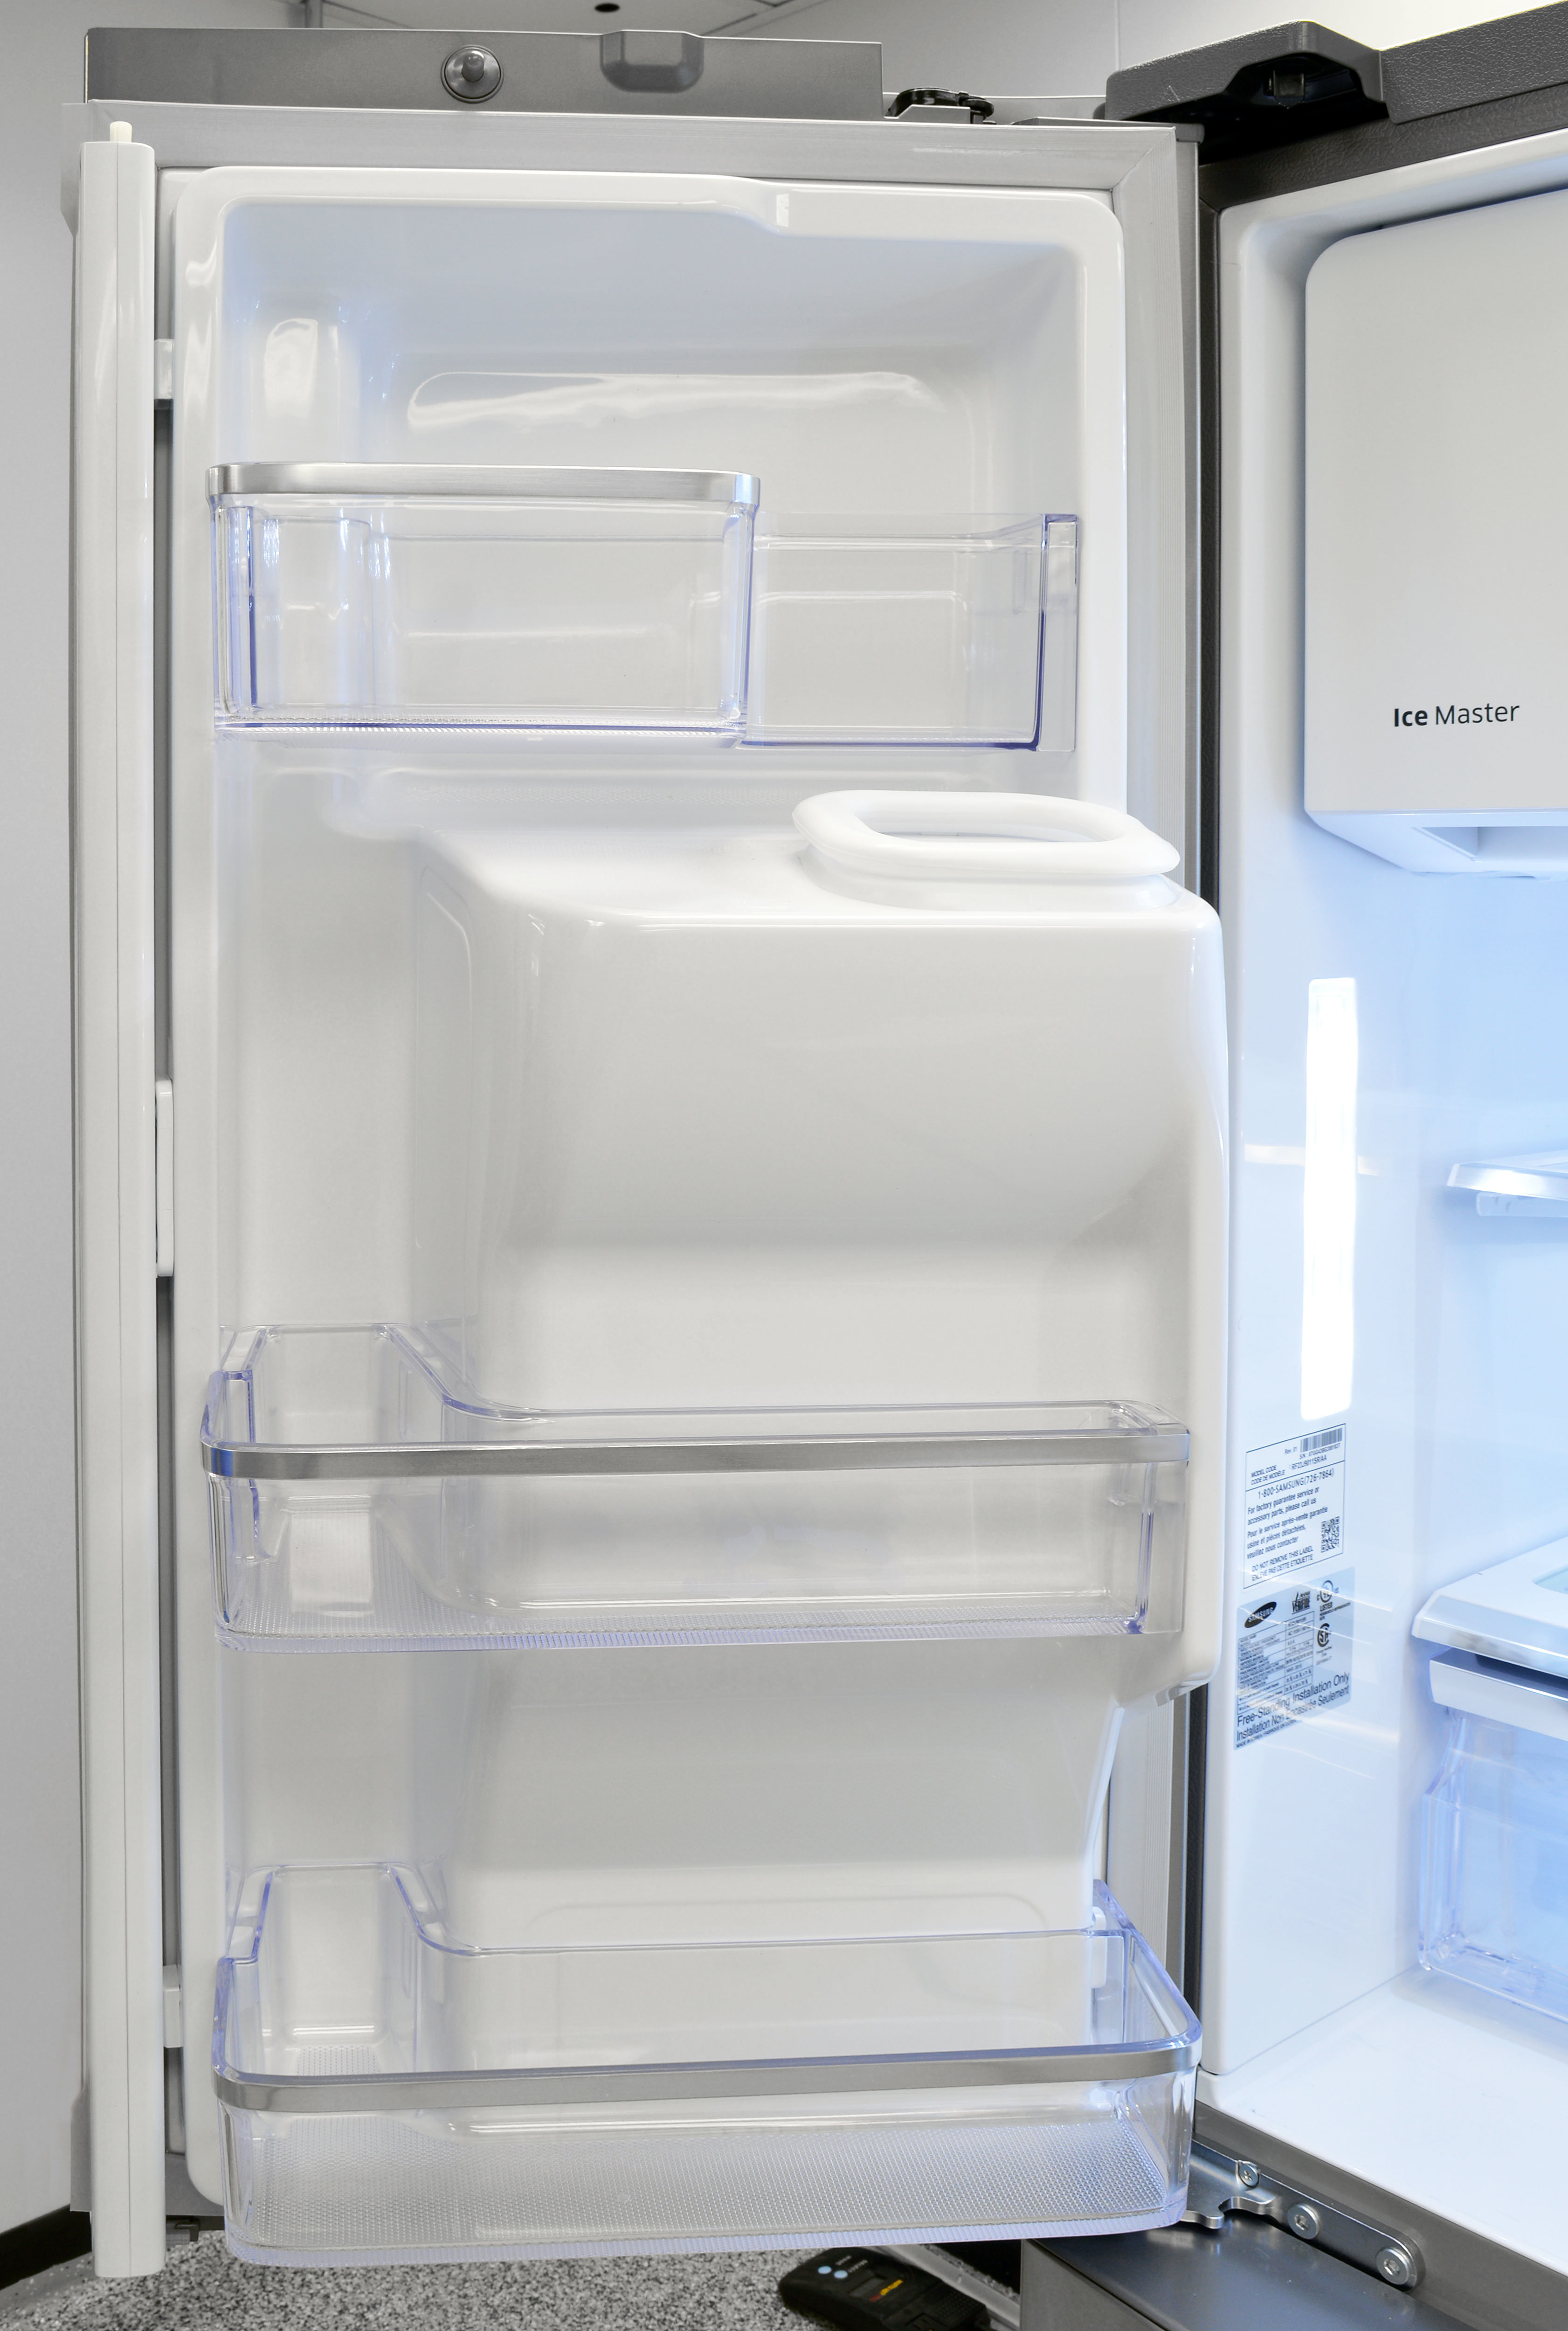 The Samsung RF23J9011SR's left door plays host to the icemaker's dispenser chute.